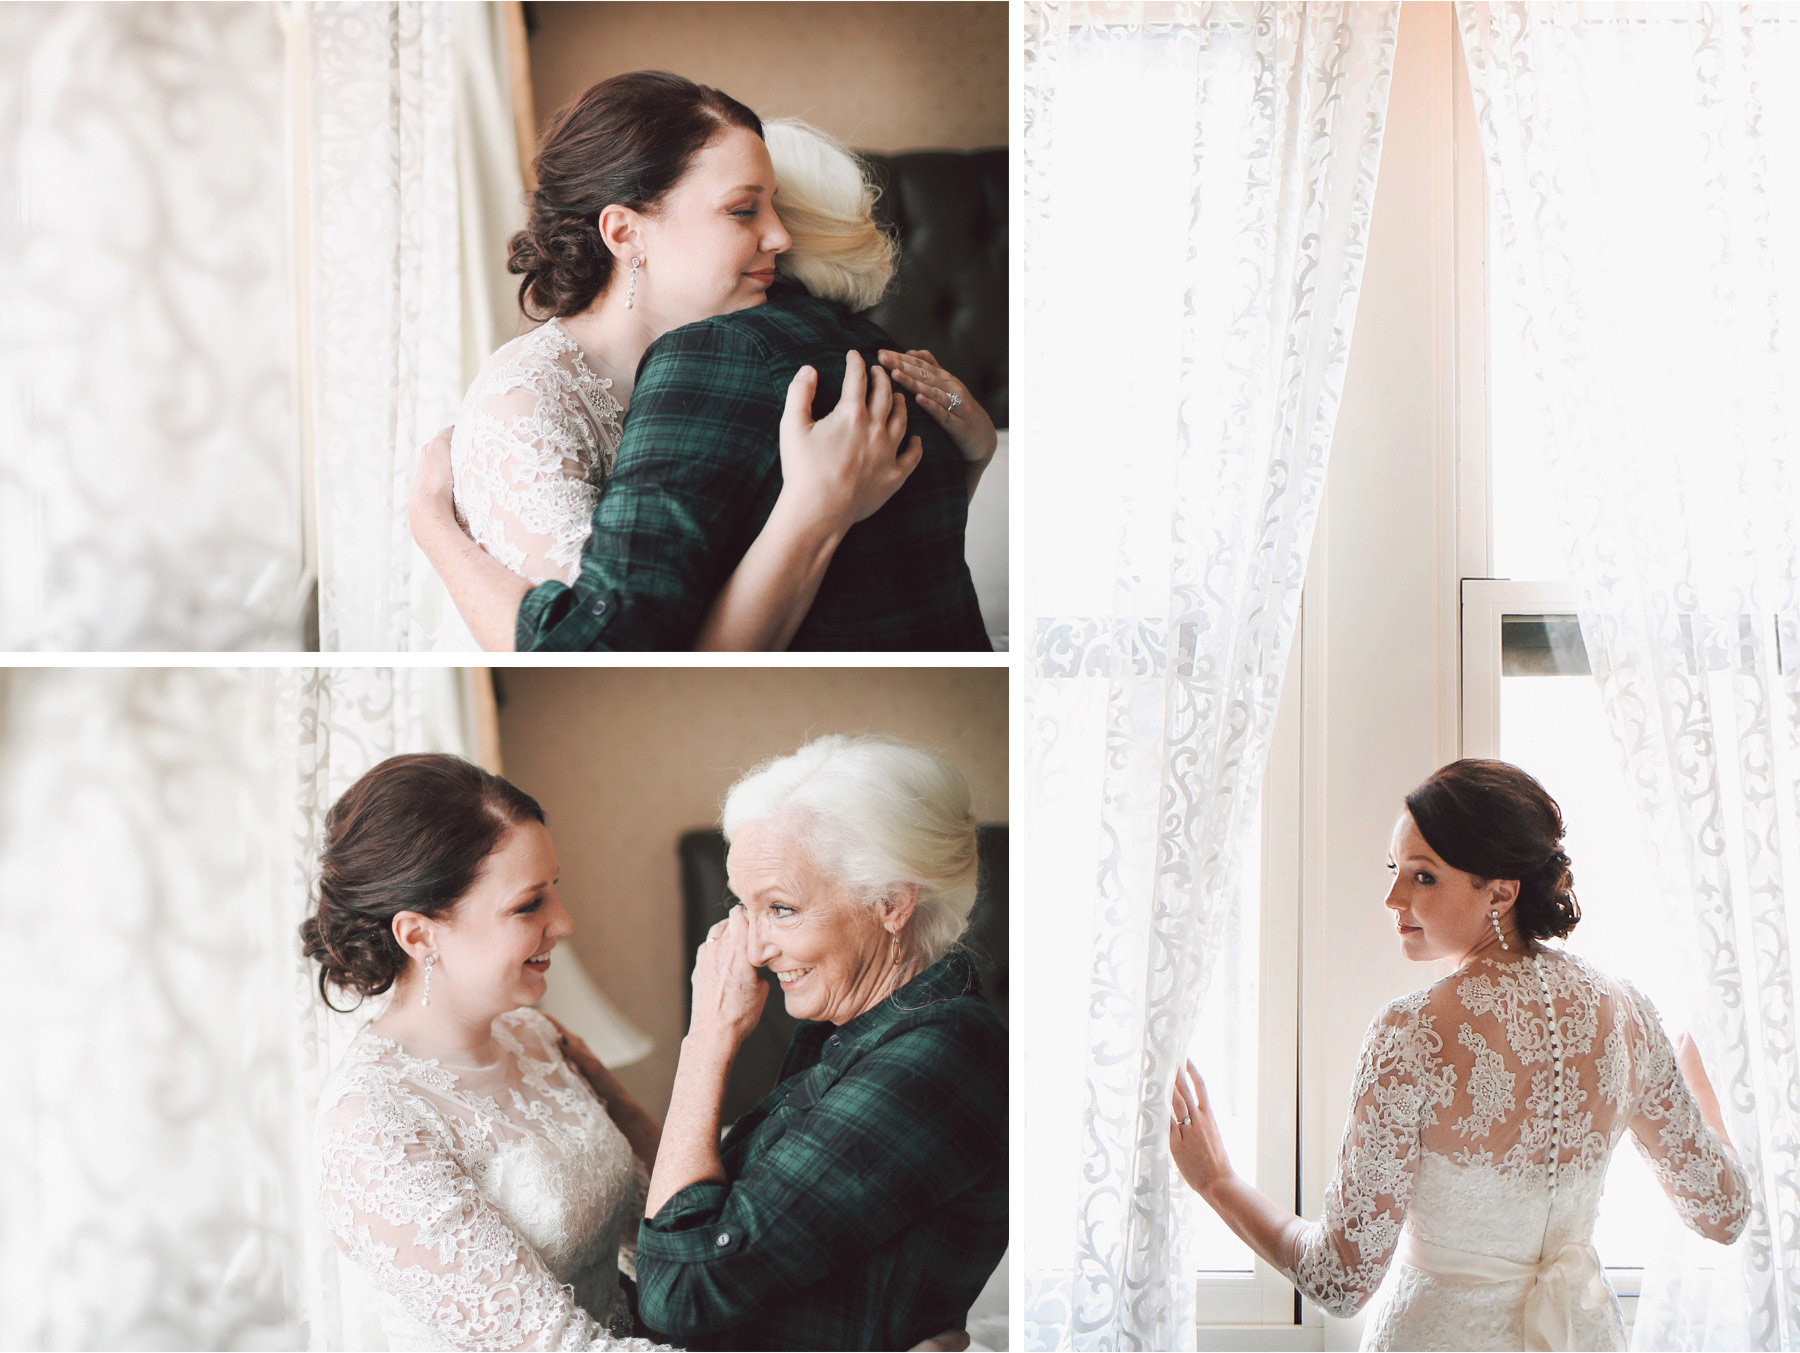 03-Minneapolis-Minnesota-Wedding-Photographer-by-Andrew-Vick-Photography-Winter-Renaissance-Hotel-Getting-Ready-Bride-Mother-Parents-Tears-Crying-Dress-Vintage-Sara-and-Rob.jpg